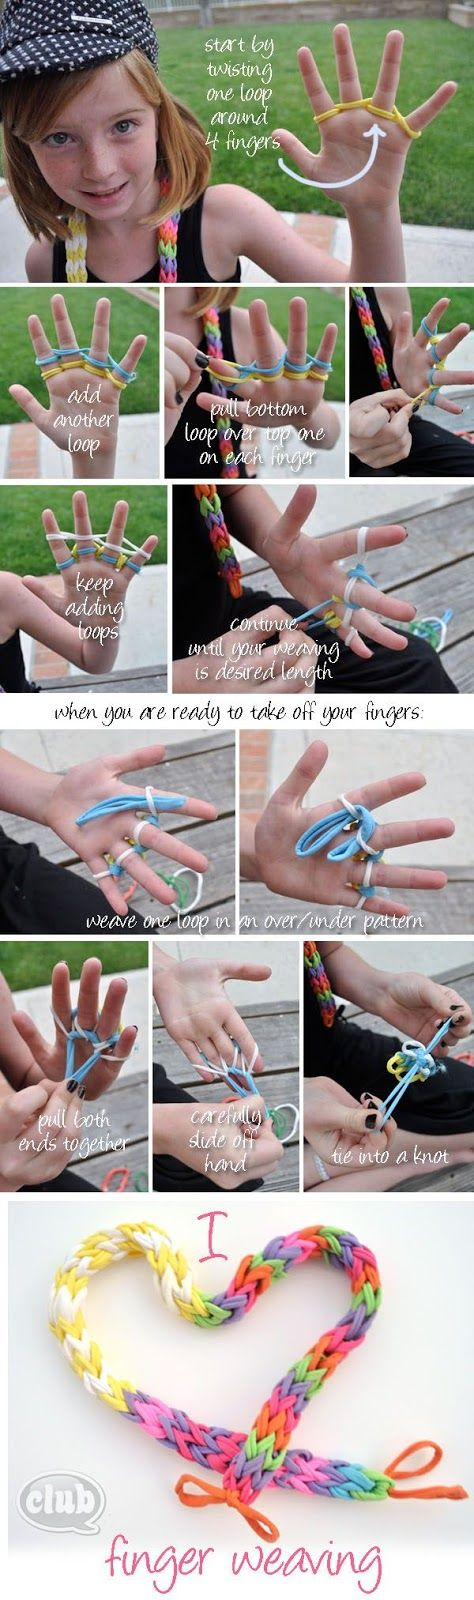 finger weaving tutorial....only tried this with yarn before...hmmm